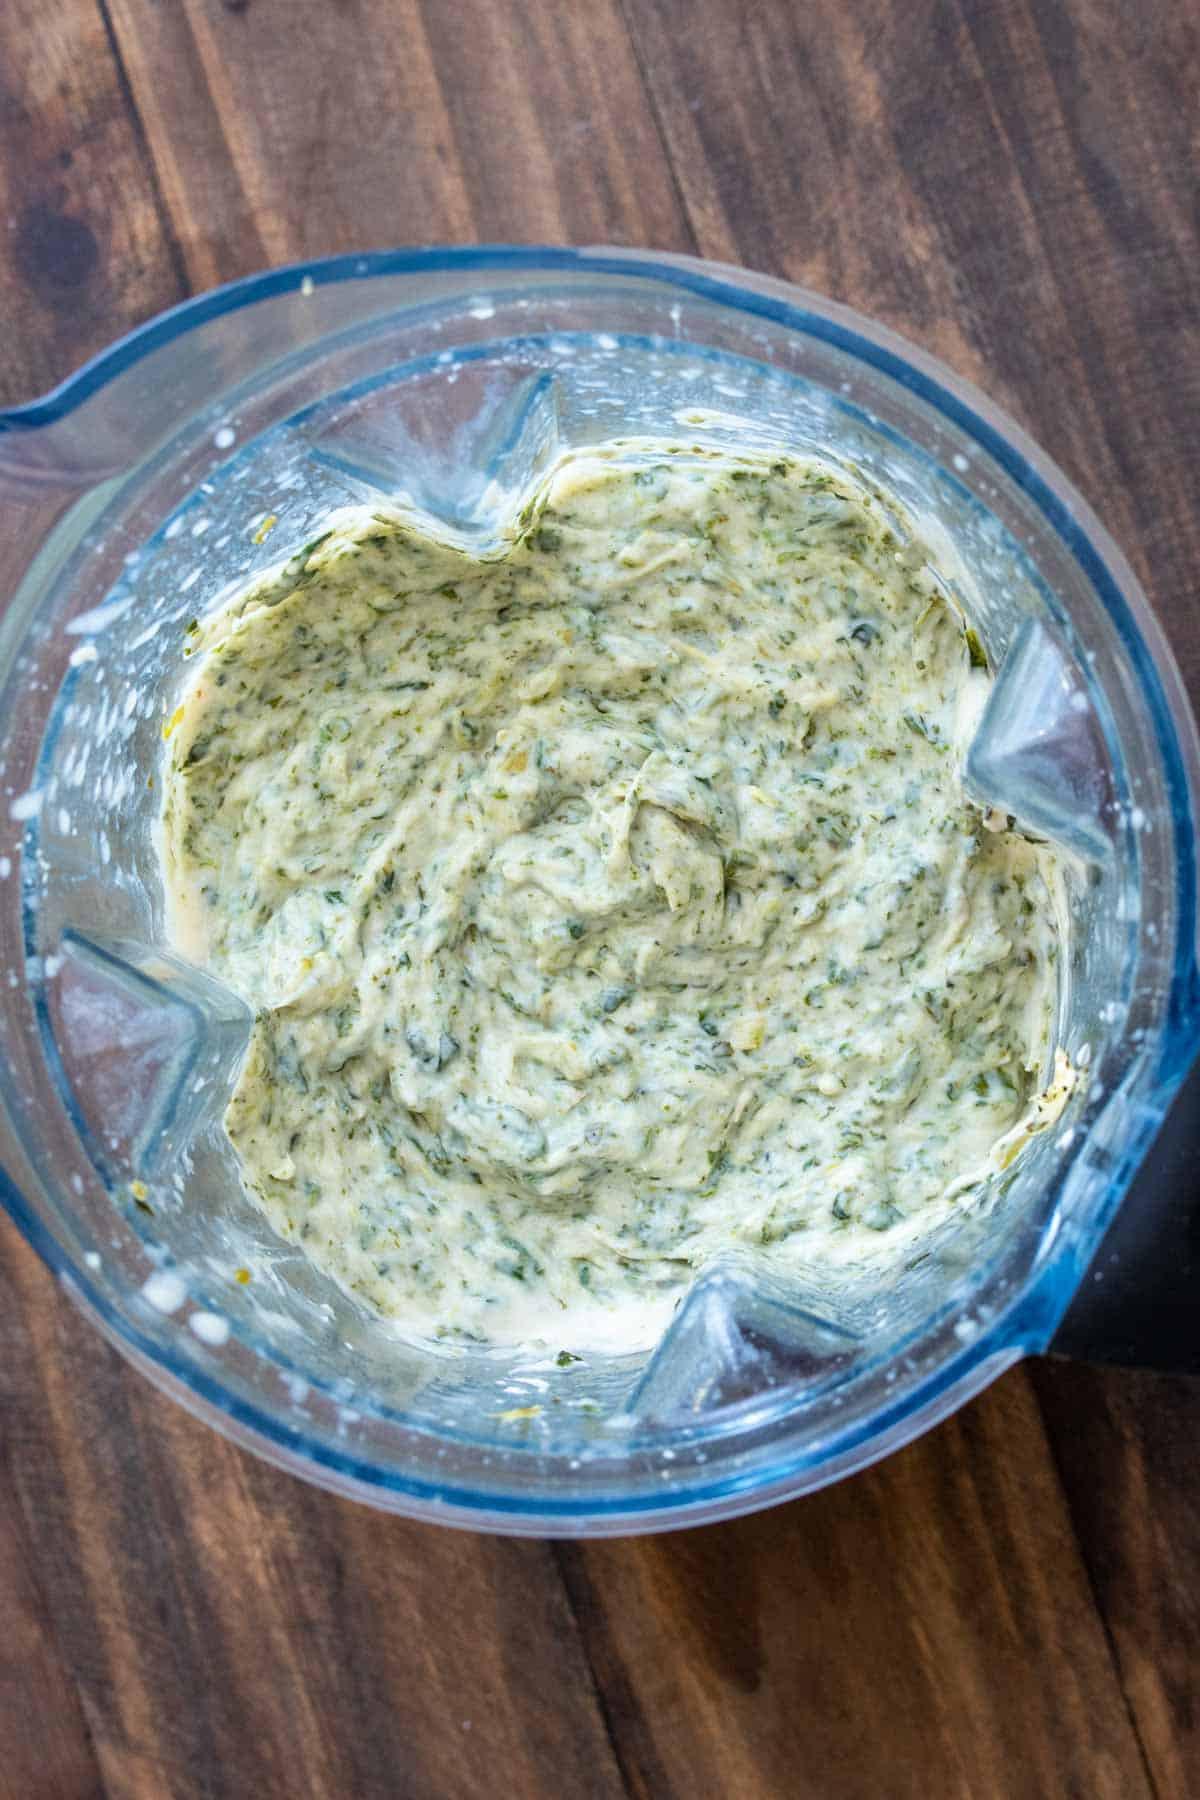 Top view of spinach artichoke dip in a blender